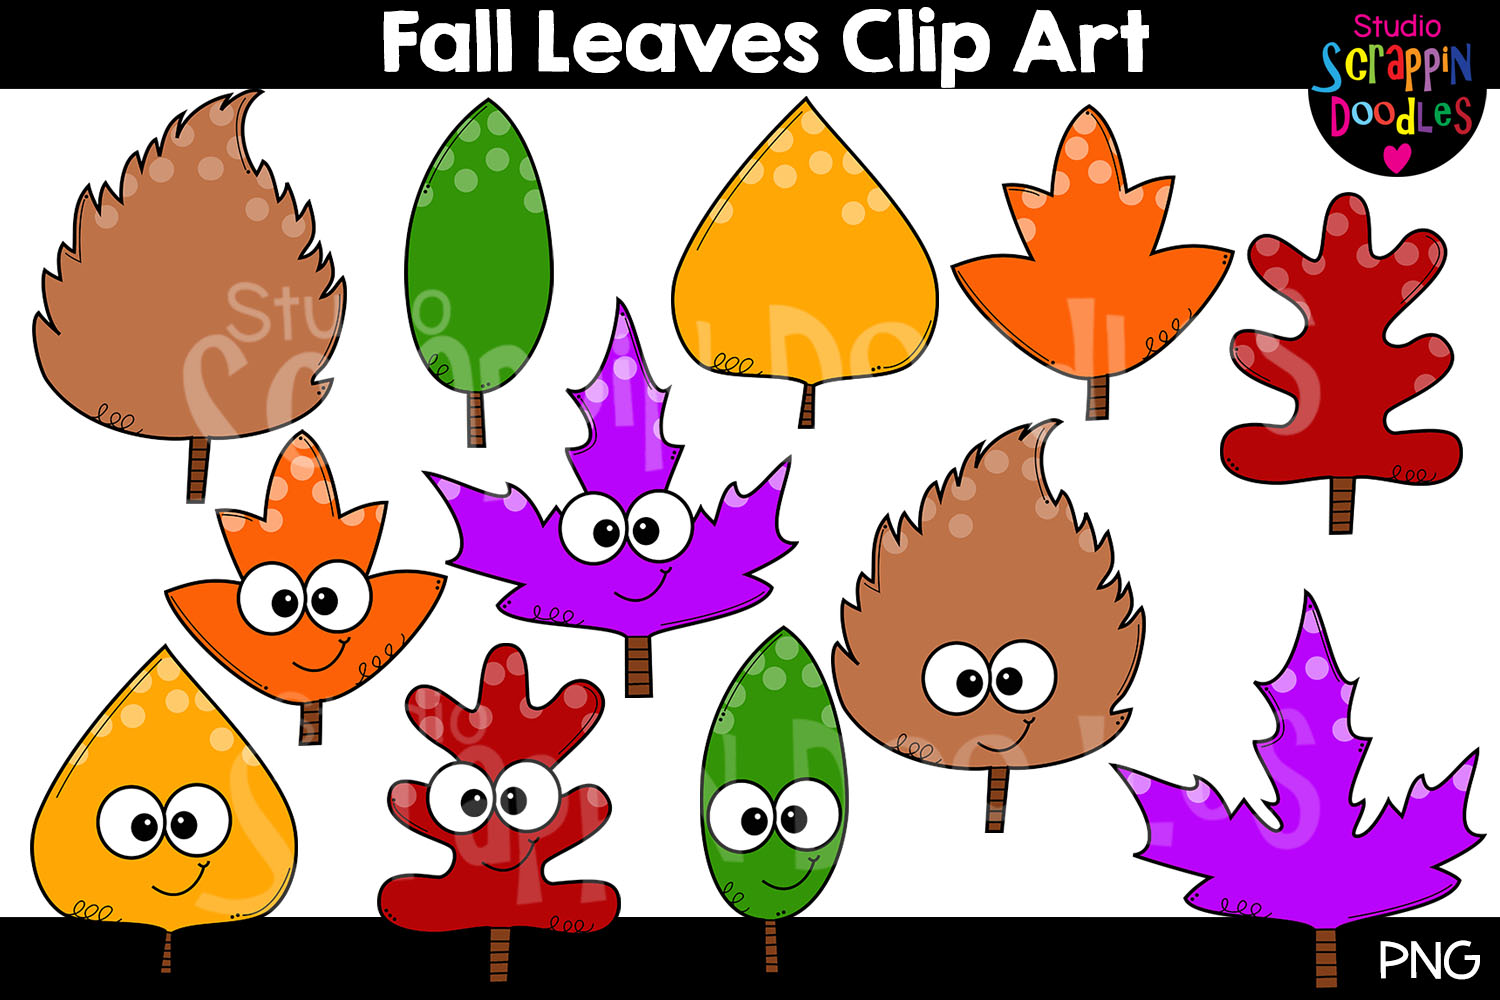 Fall Leaves Clip Art example image 1